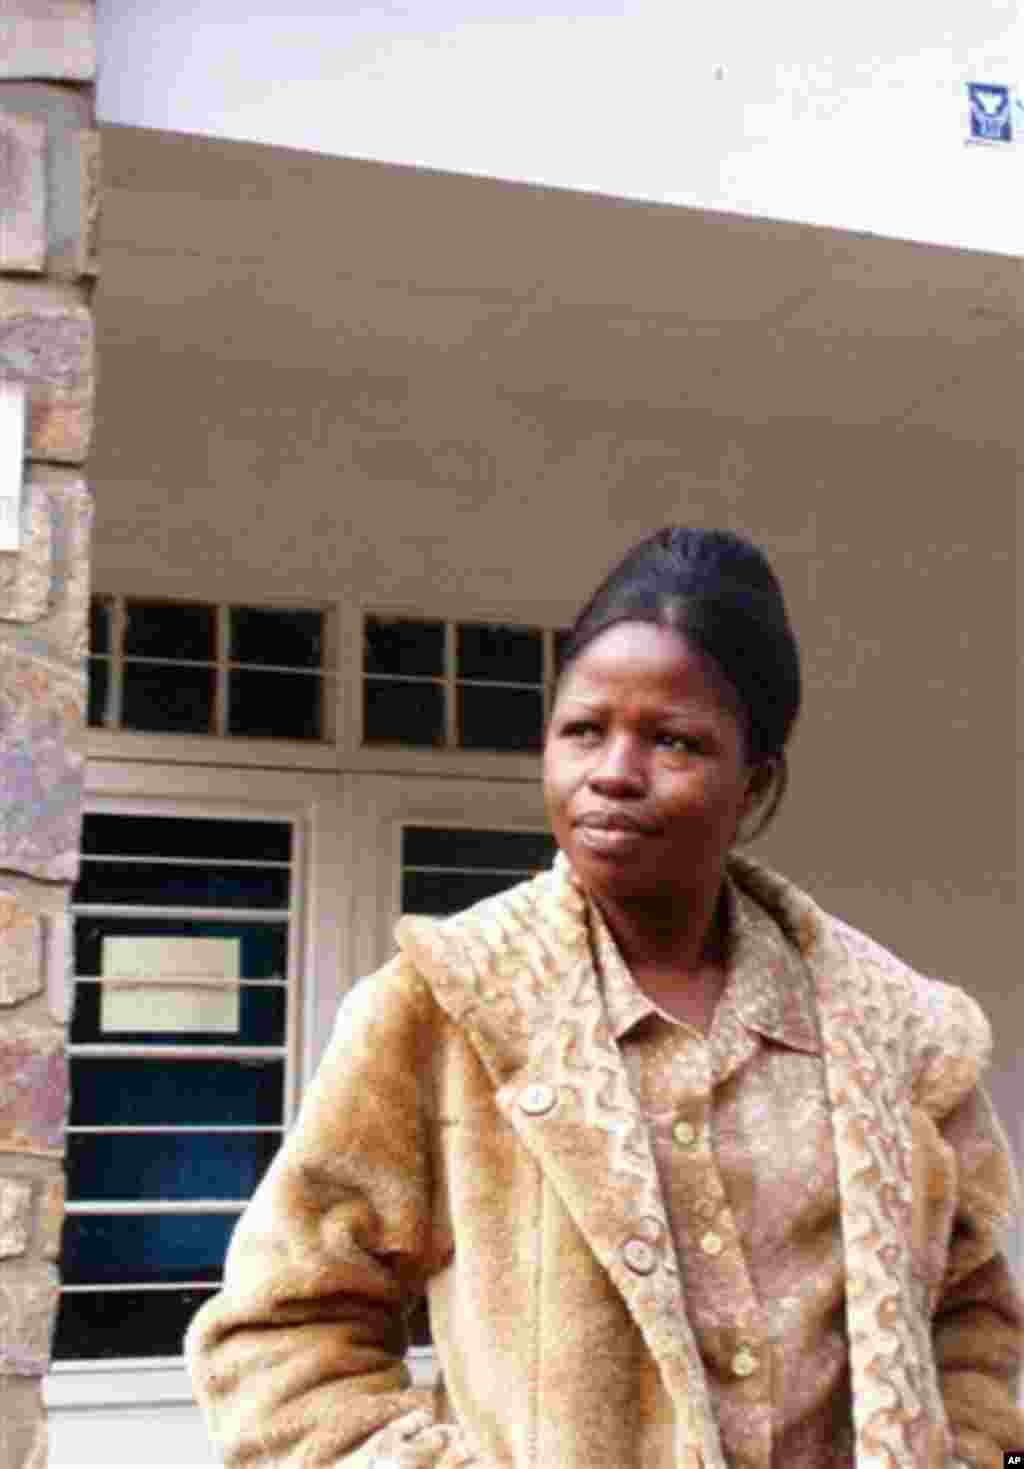 ** CORRECTS DAY IN DATE ** Cecile Mulolo a psychologist stands outside the Panzi General Hospital for rape victims in Eastern Congo close to the town of Bukavu, Democratic Republic of Congo on Saturday, June. 11, 2005. In Congo, for those who manage to su